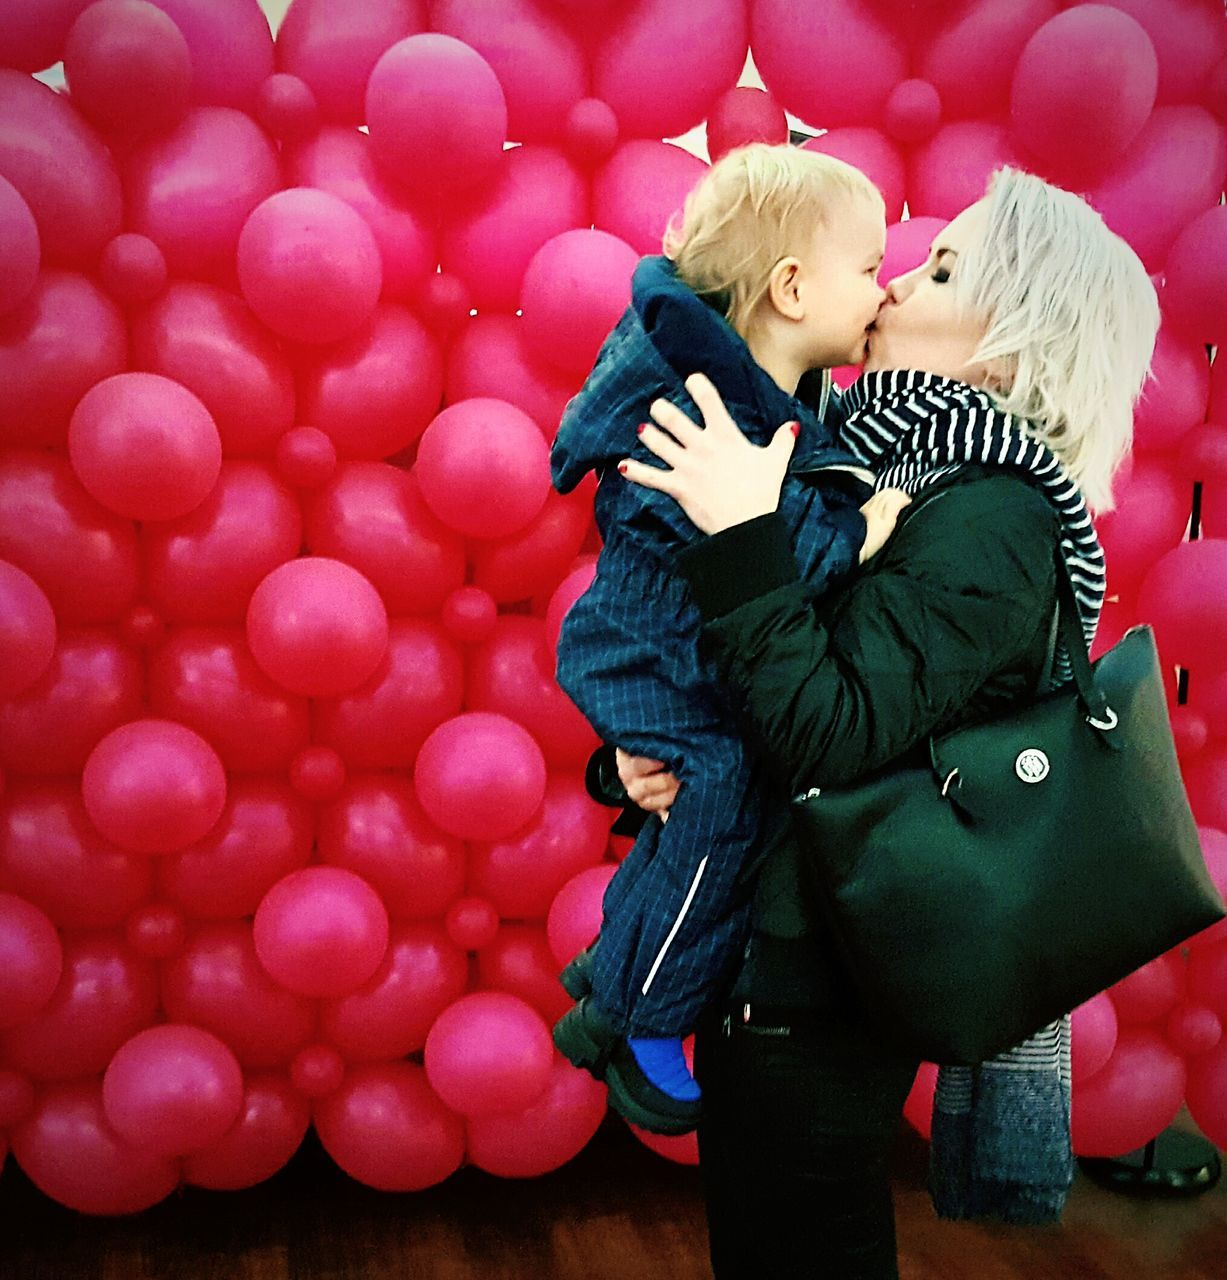 childhood, love, togetherness, boys, two people, holding, child, blond hair, cute, standing, full length, real people, indoors, day, people, adult